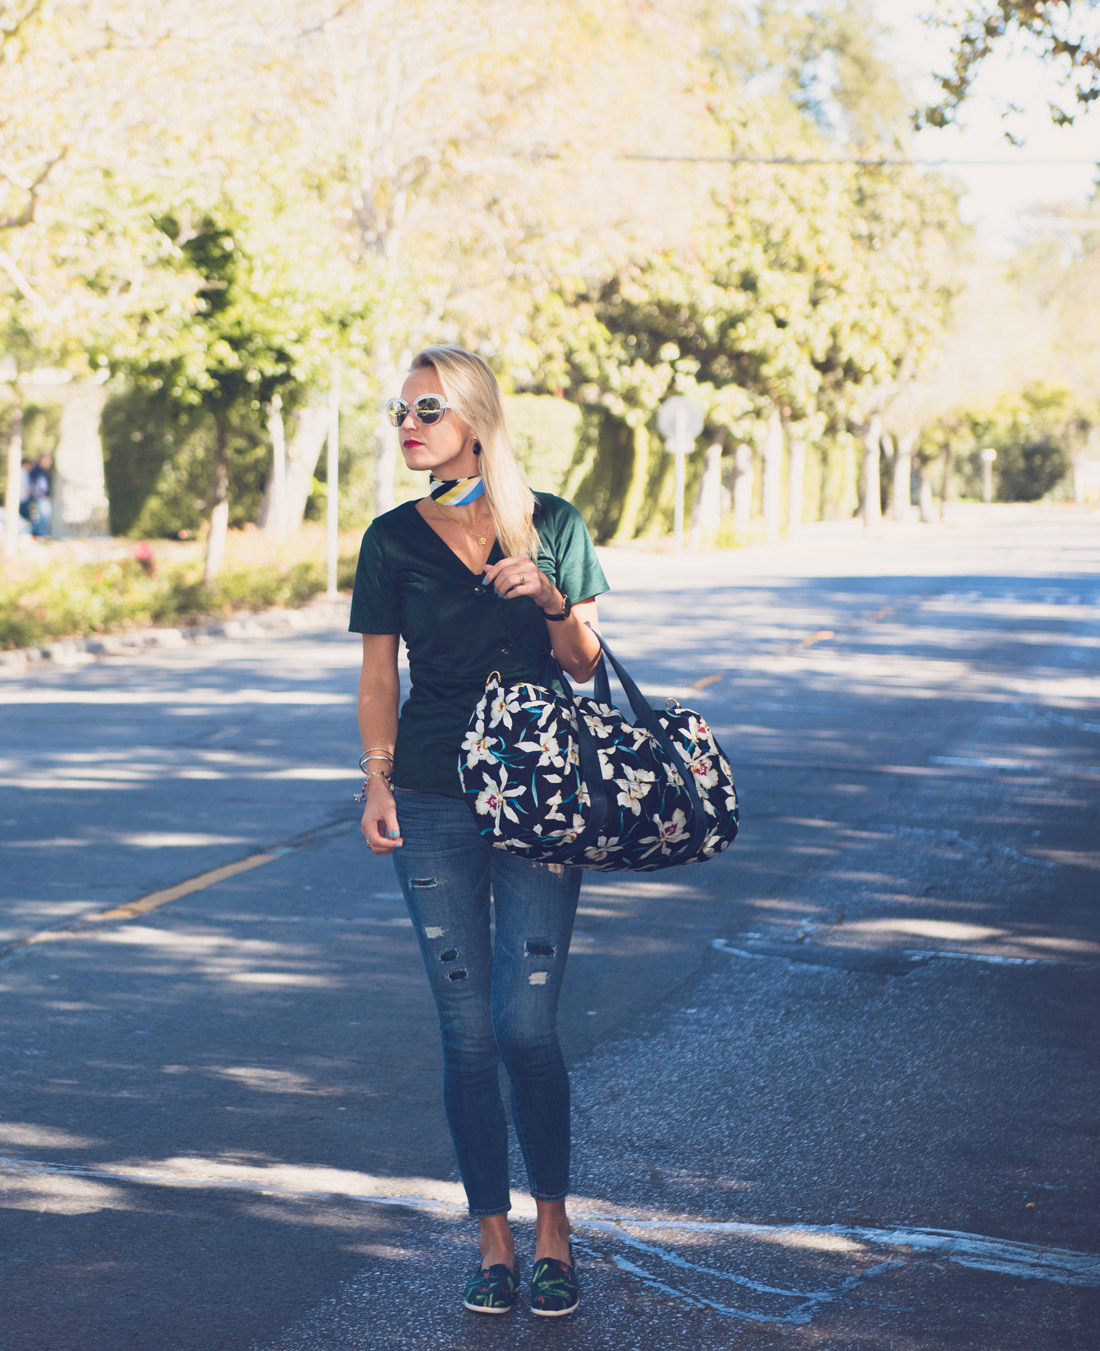 bag-at-you-travel-blog-where-to-travel-in-fall